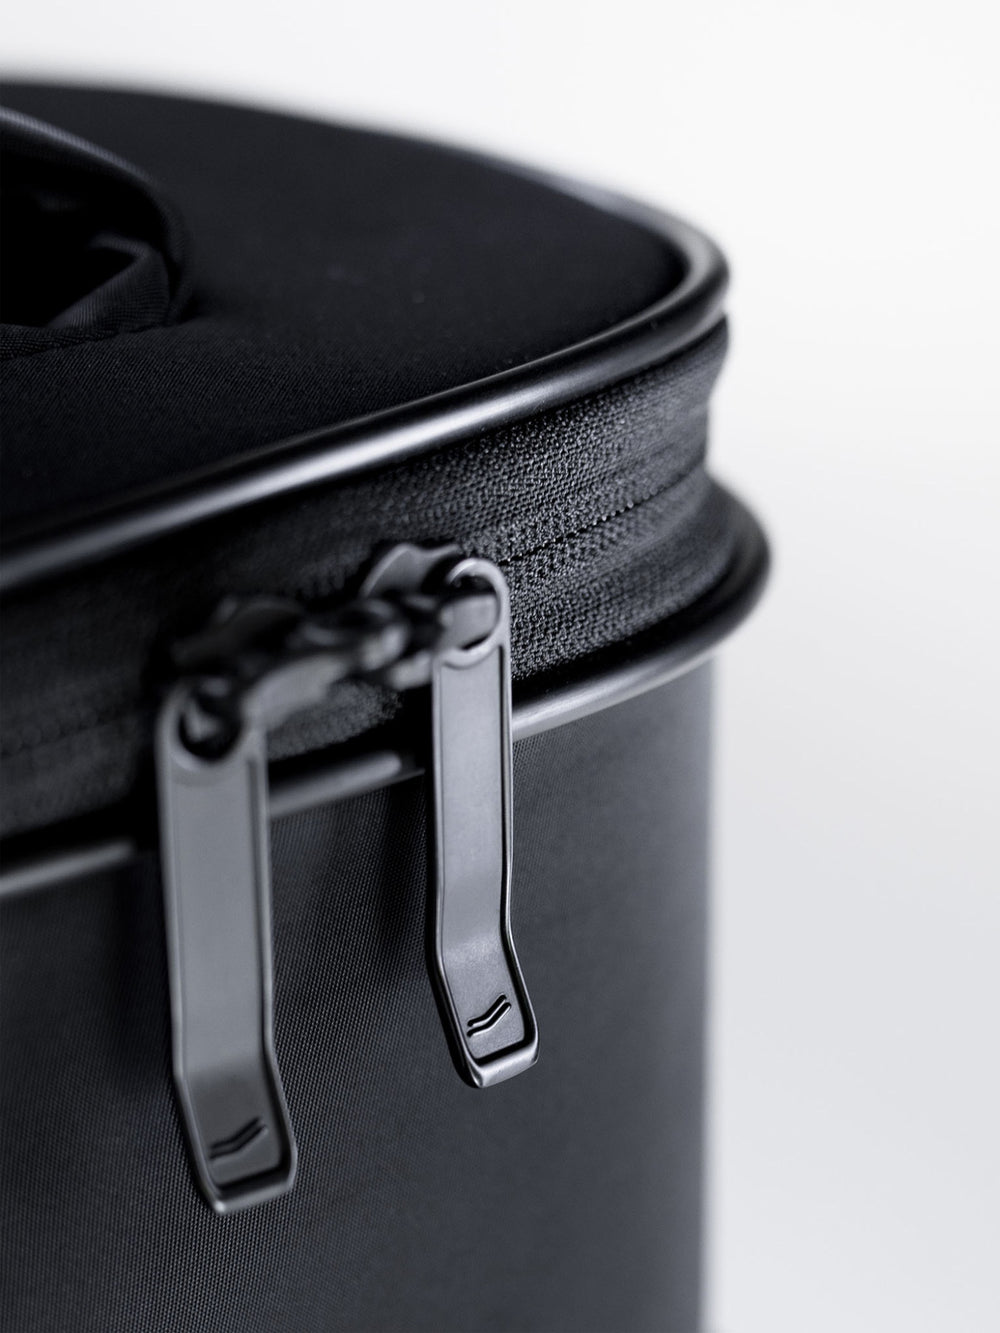 legacy c38 carry on high quality zippers